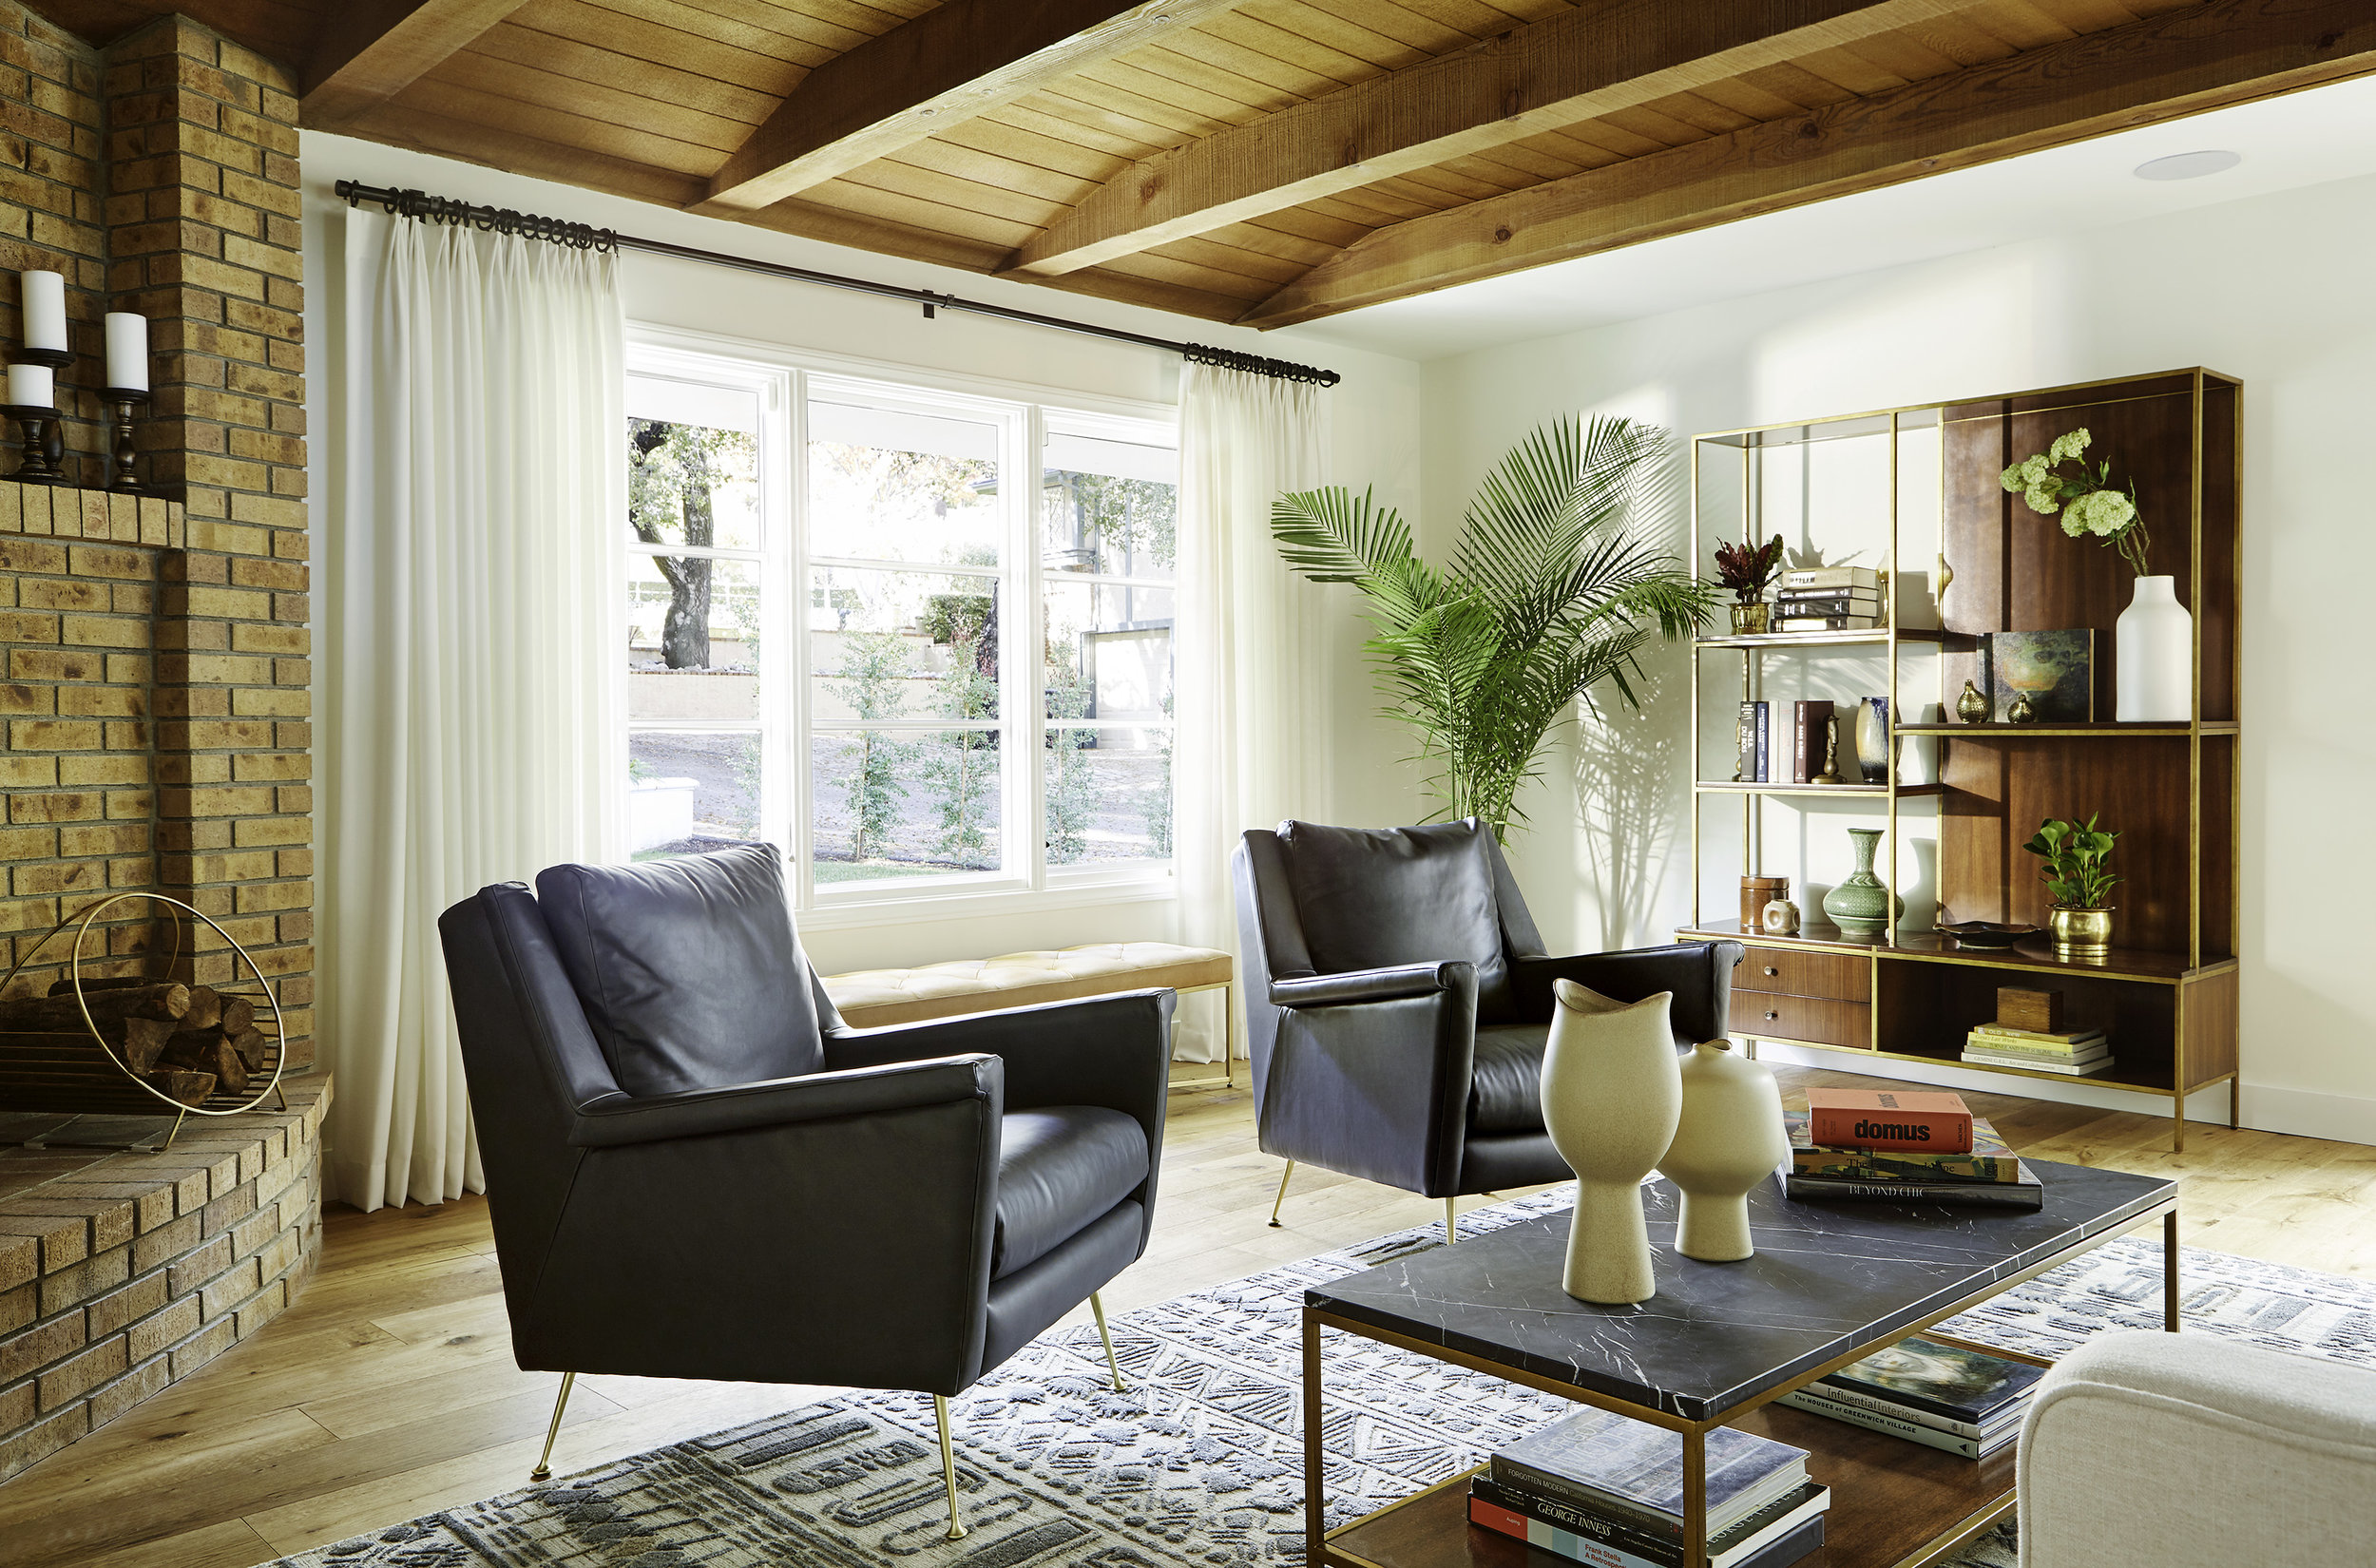 Lily_Spindle_Pasadena_Living_Room_2_028.jpg